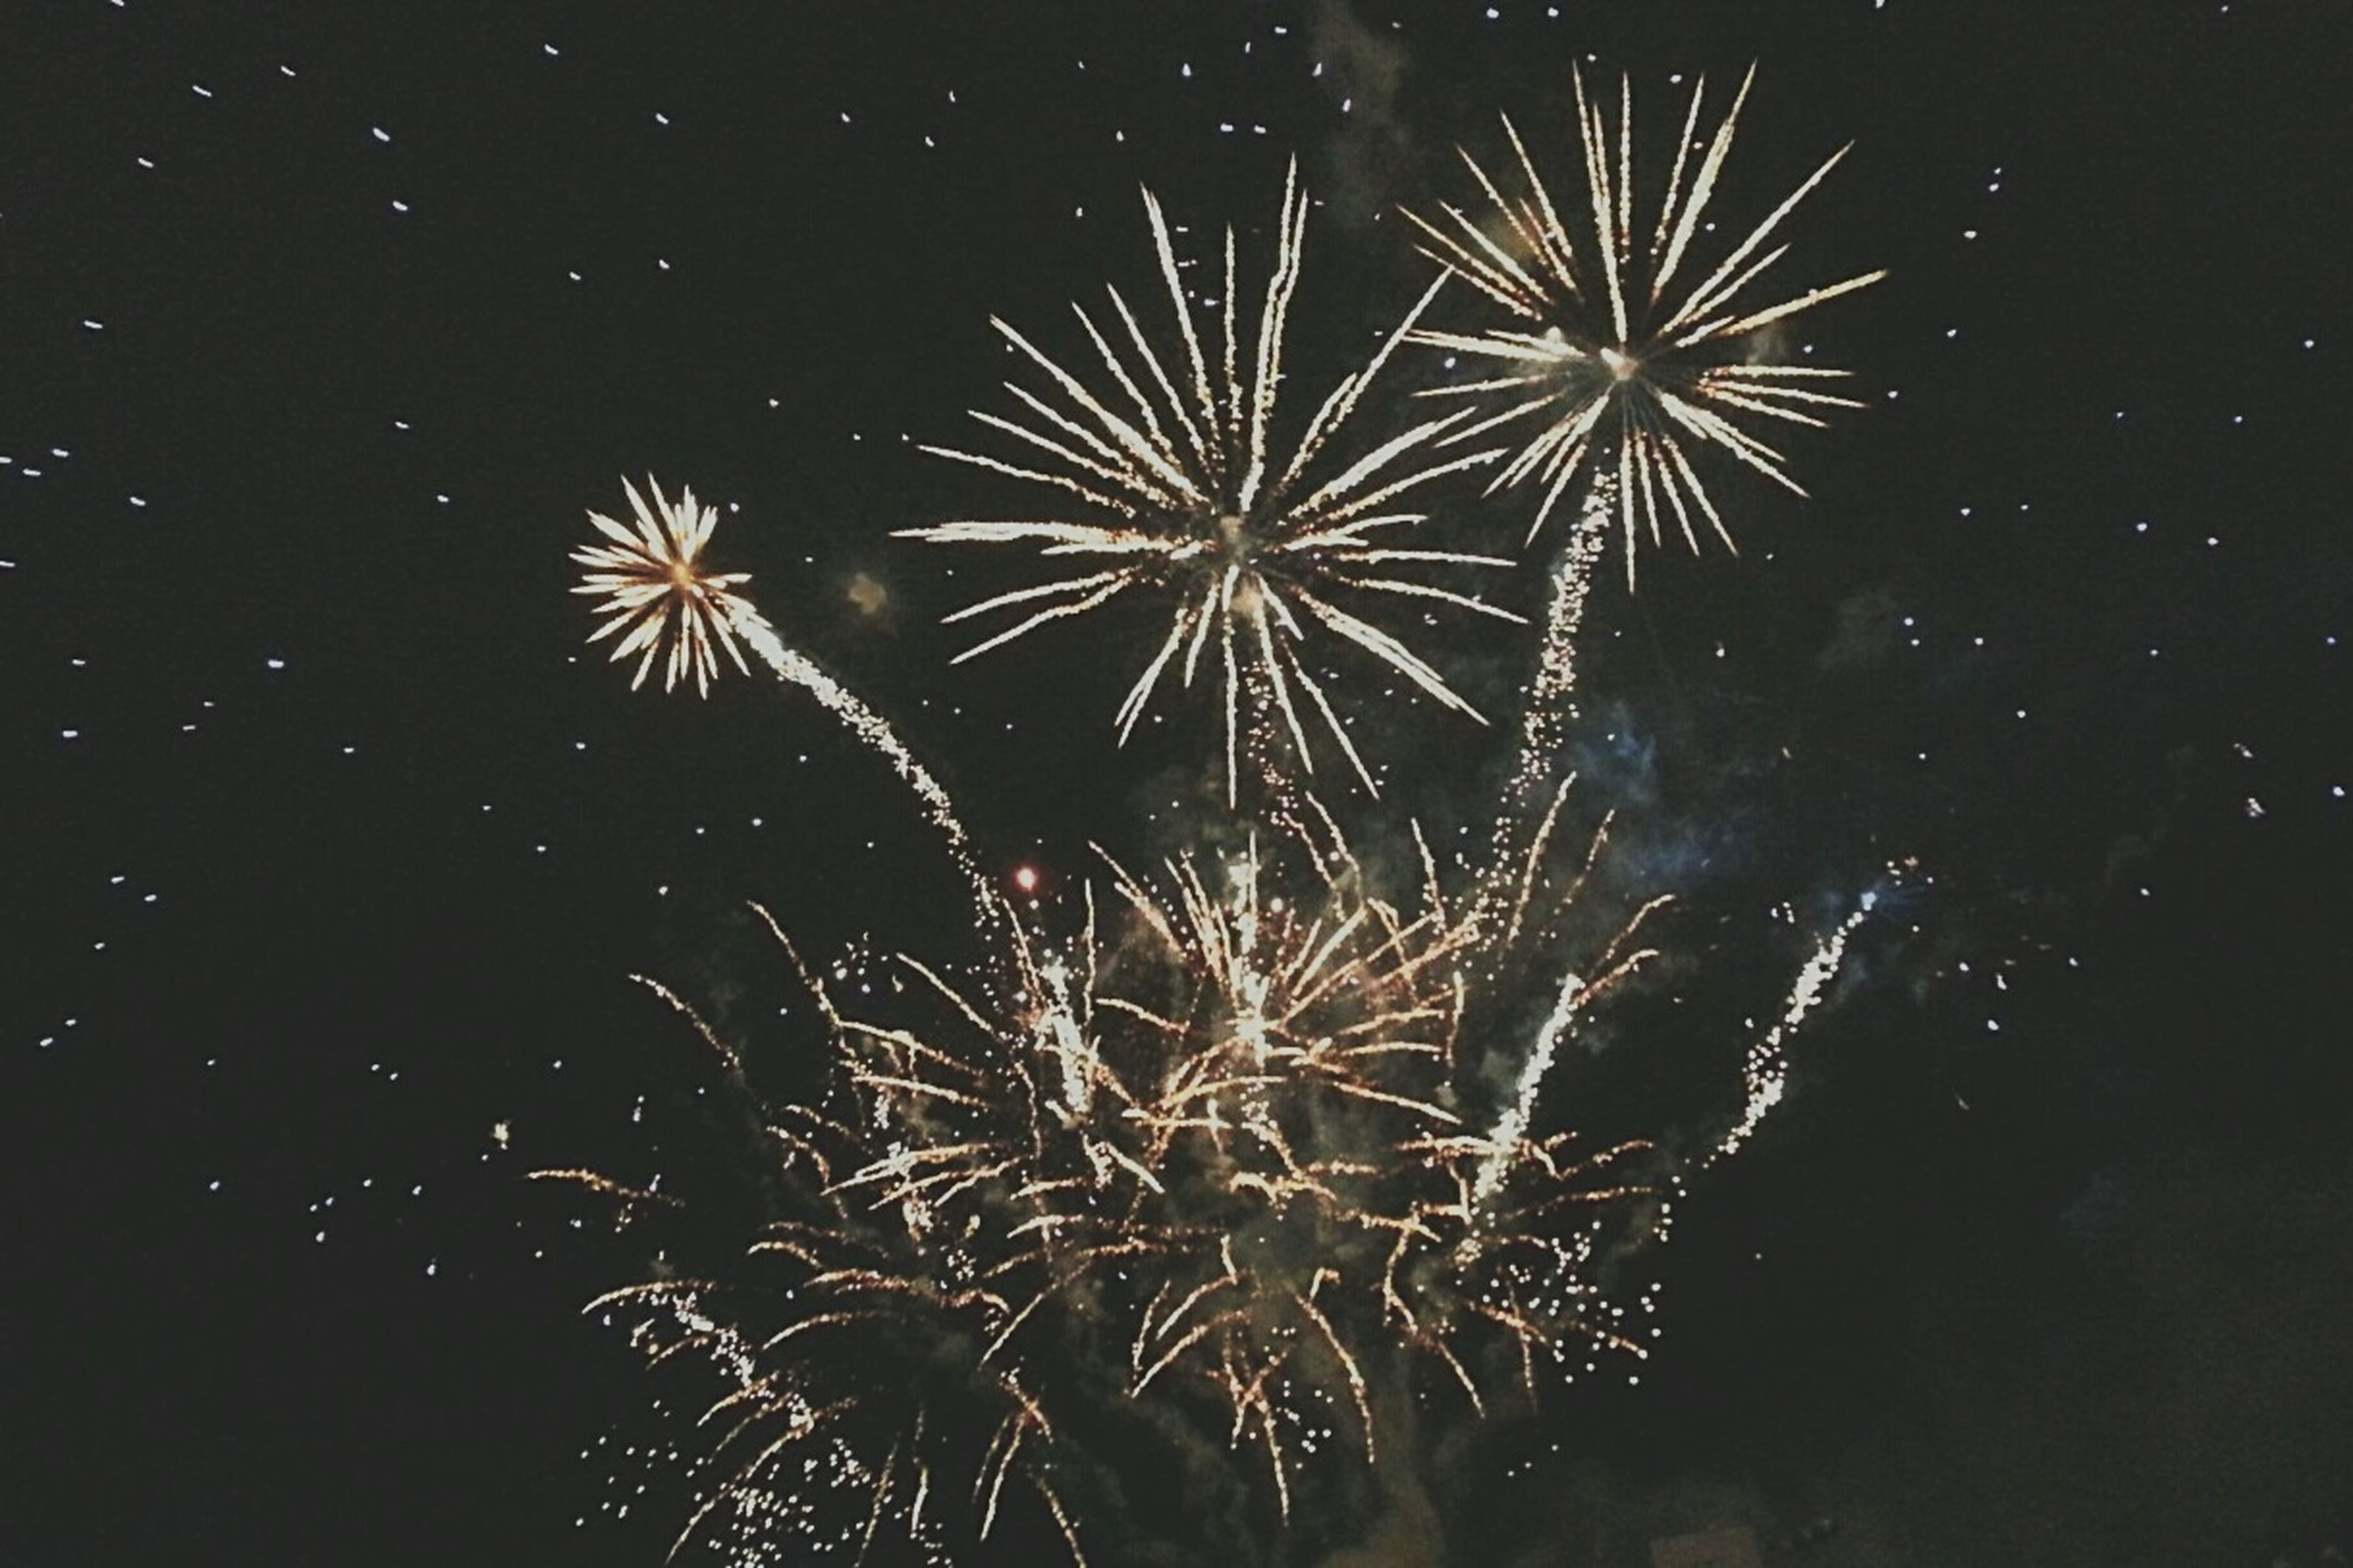 night, firework display, celebration, low angle view, exploding, illuminated, firework - man made object, long exposure, glowing, motion, sky, sparks, arts culture and entertainment, firework, blurred motion, event, entertainment, outdoors, celebration event, no people